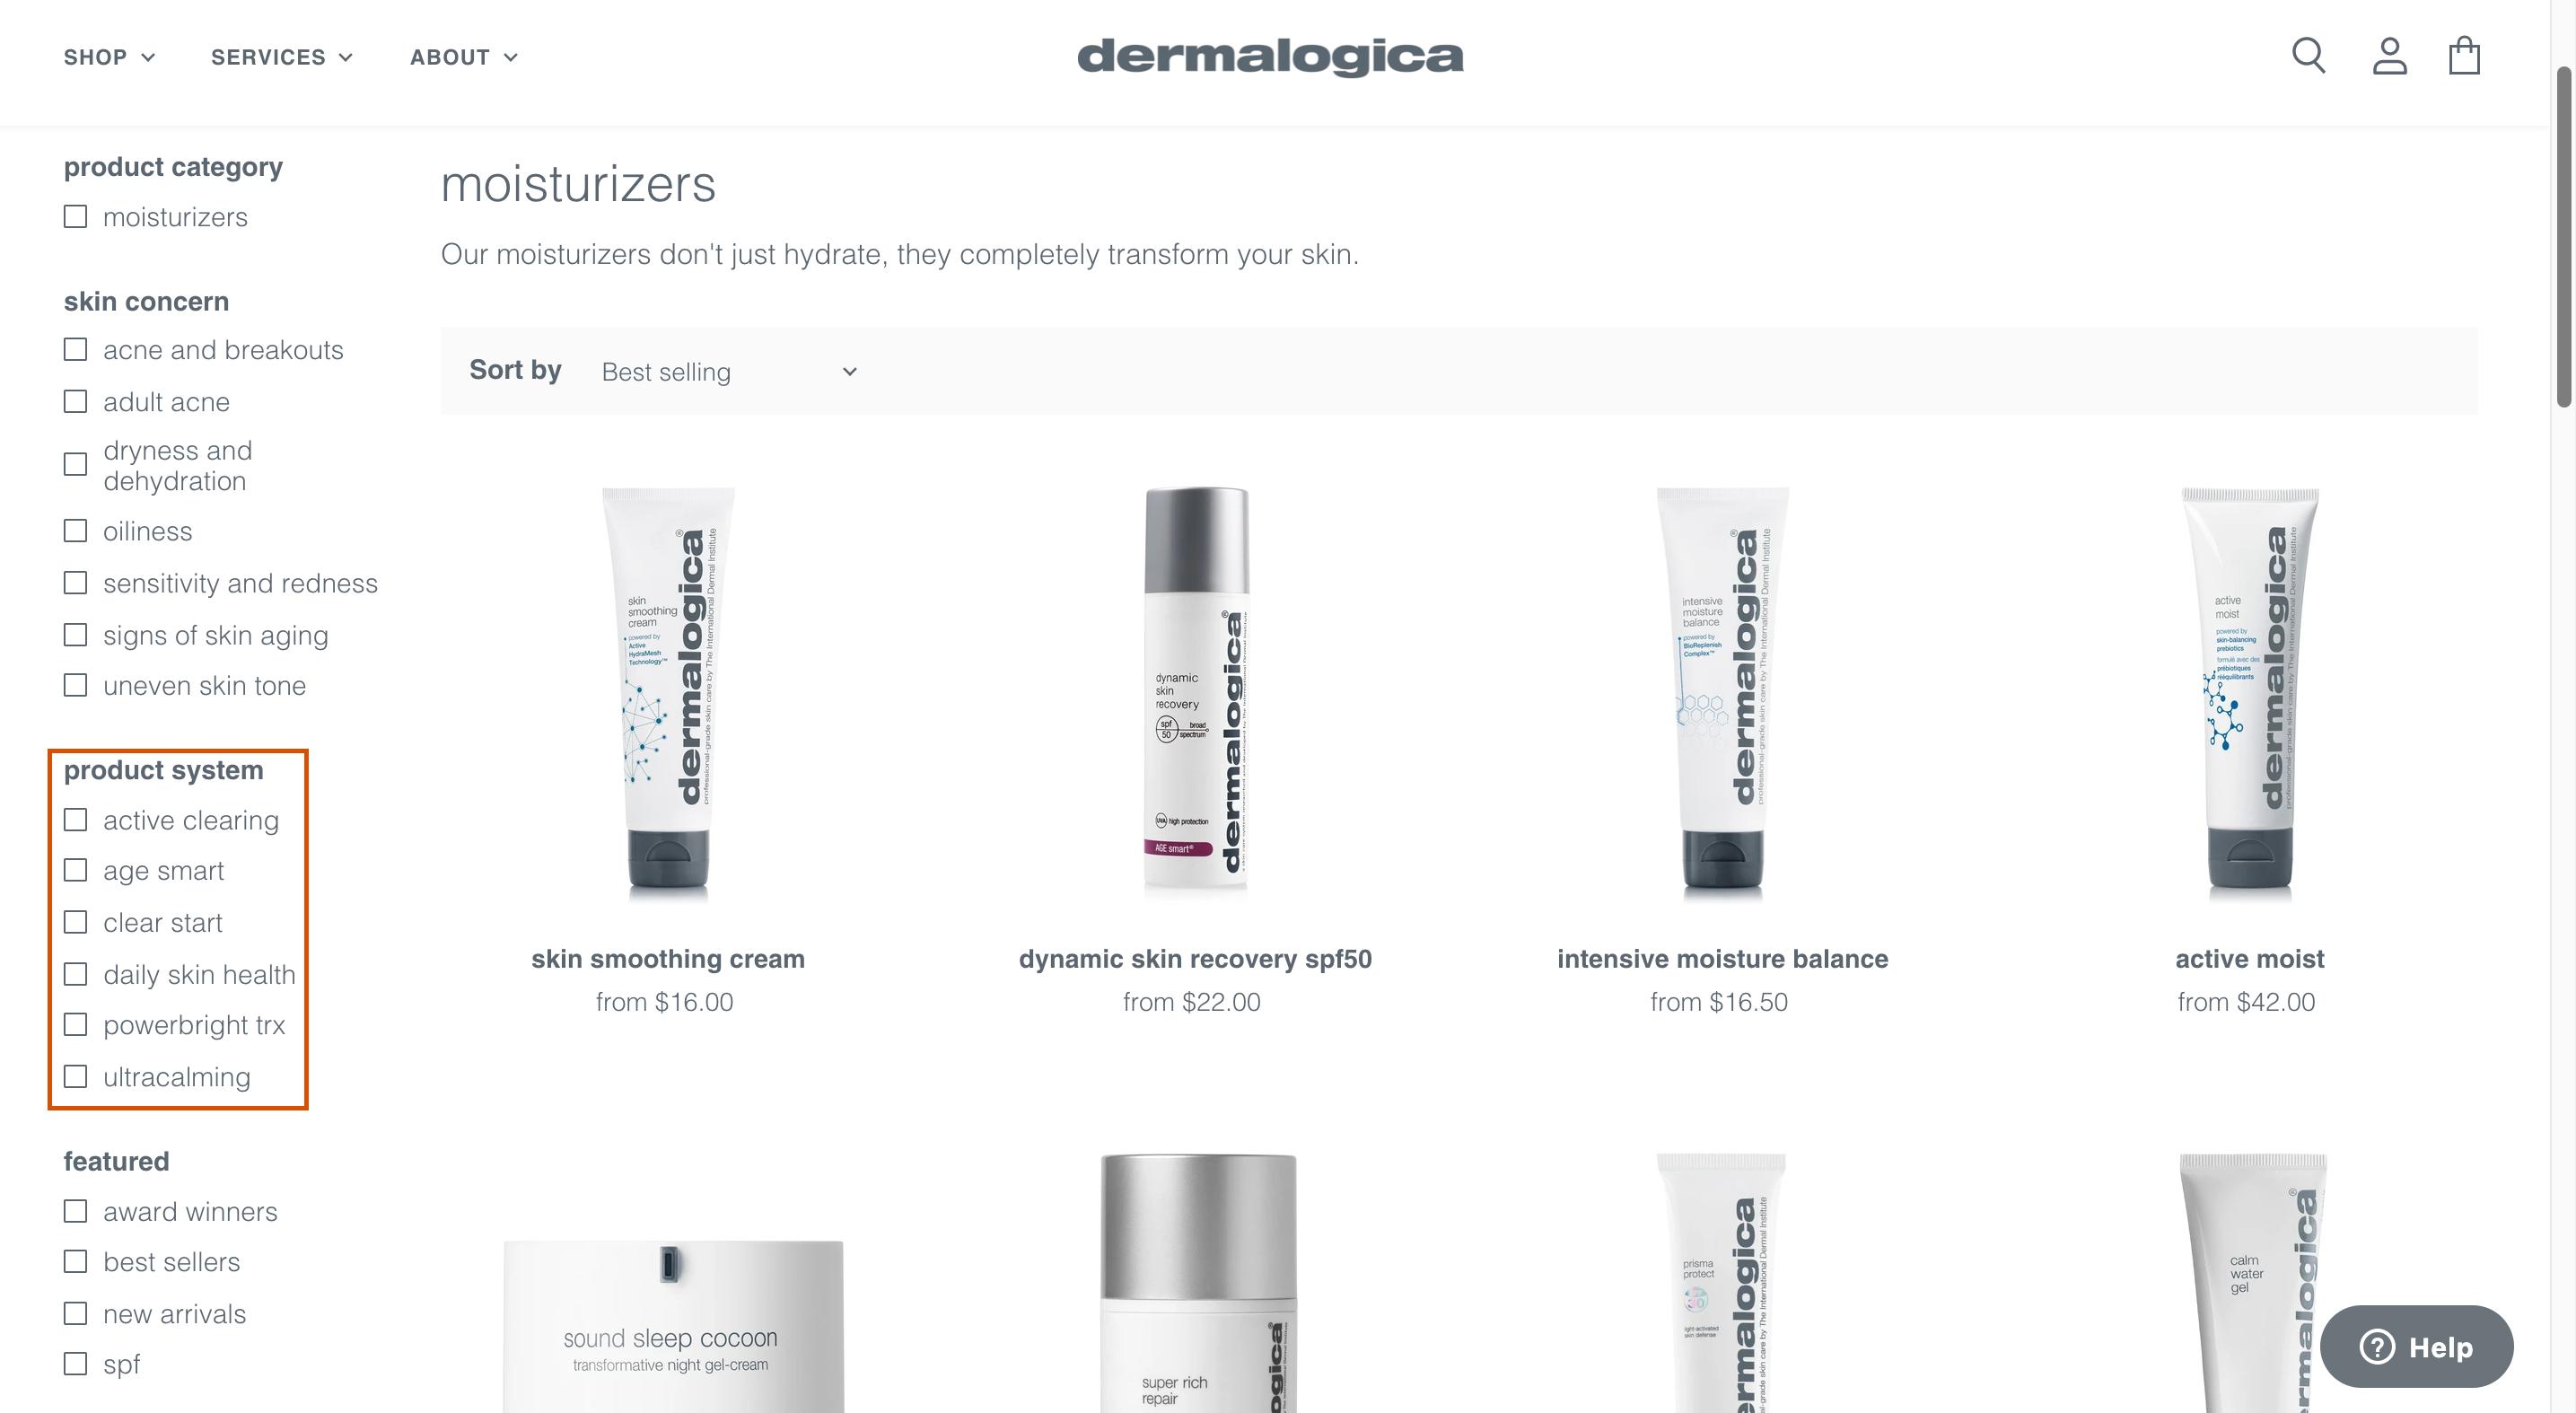 Dermalogica product system filter faceted search